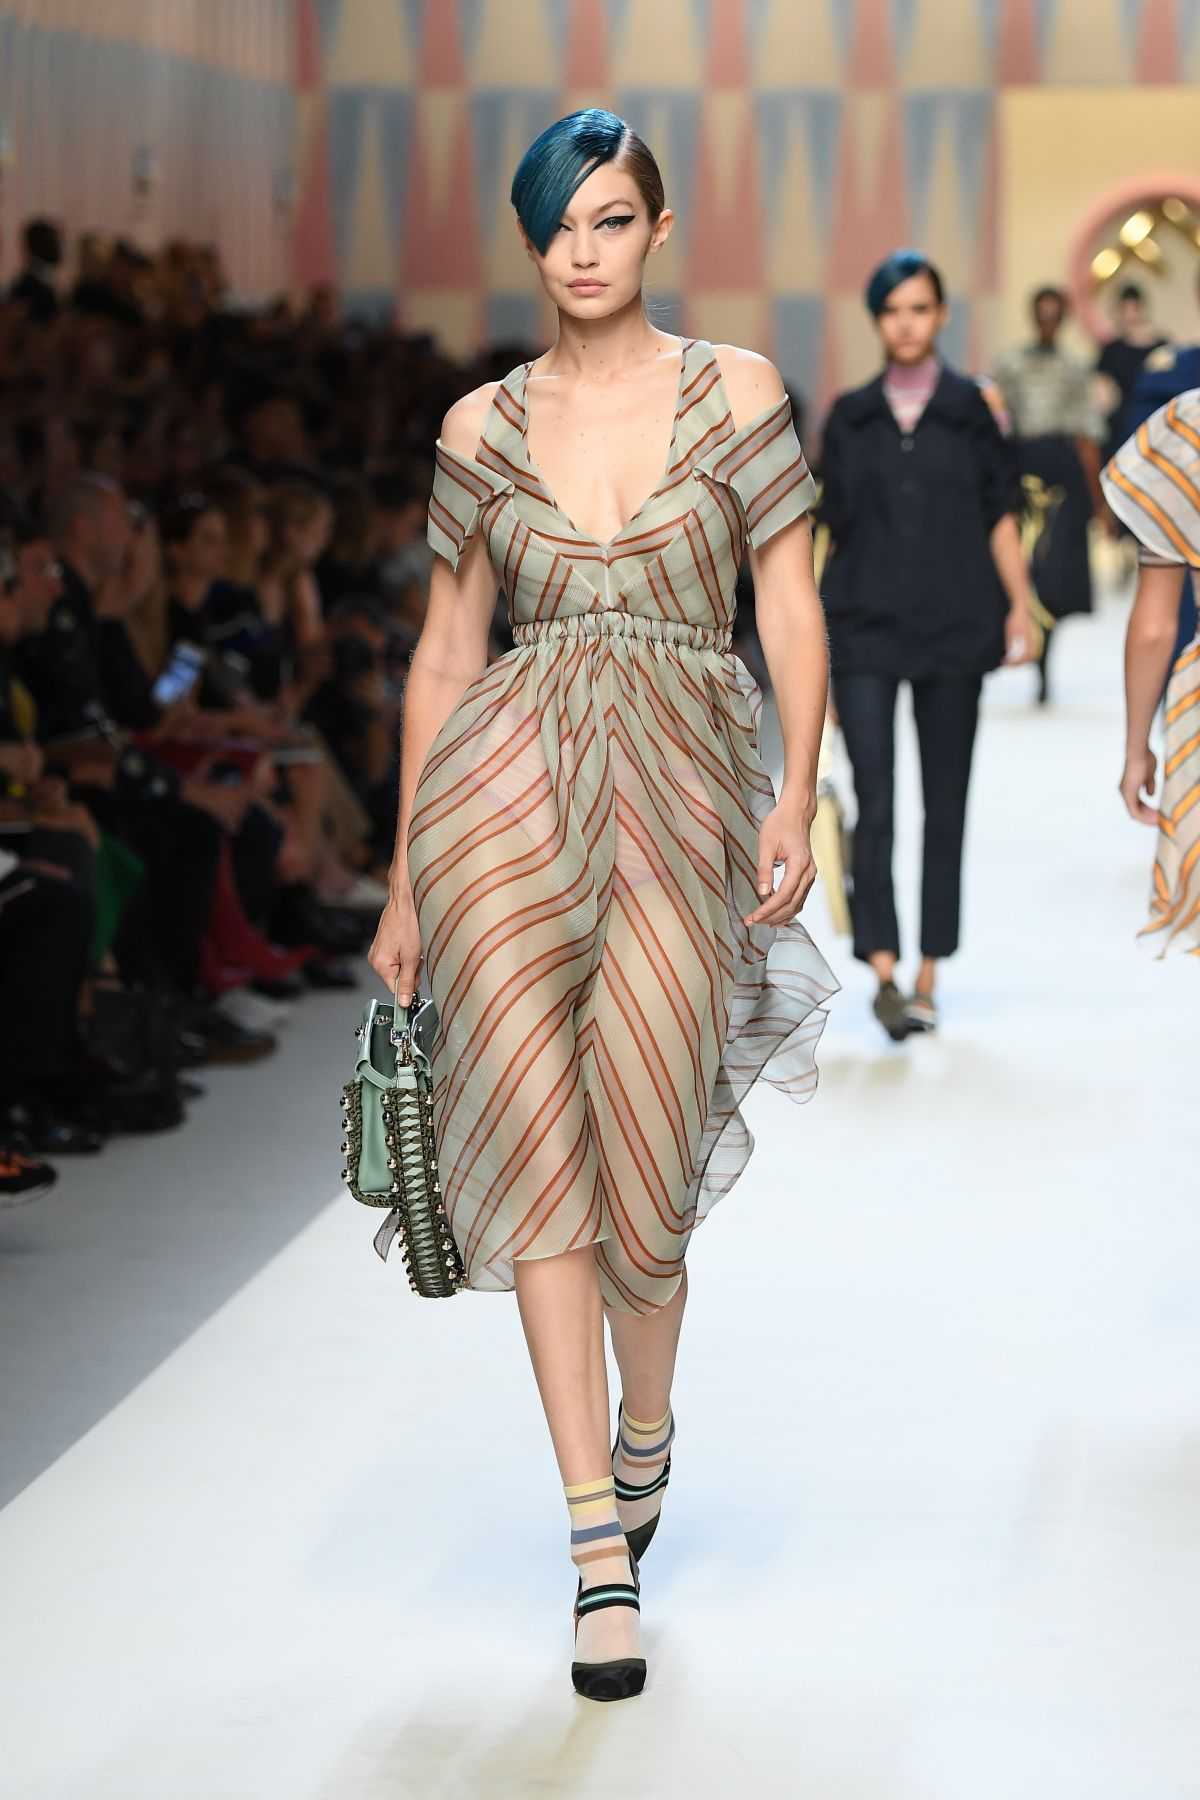 gigi hadid runway at fendi fashion show during milan